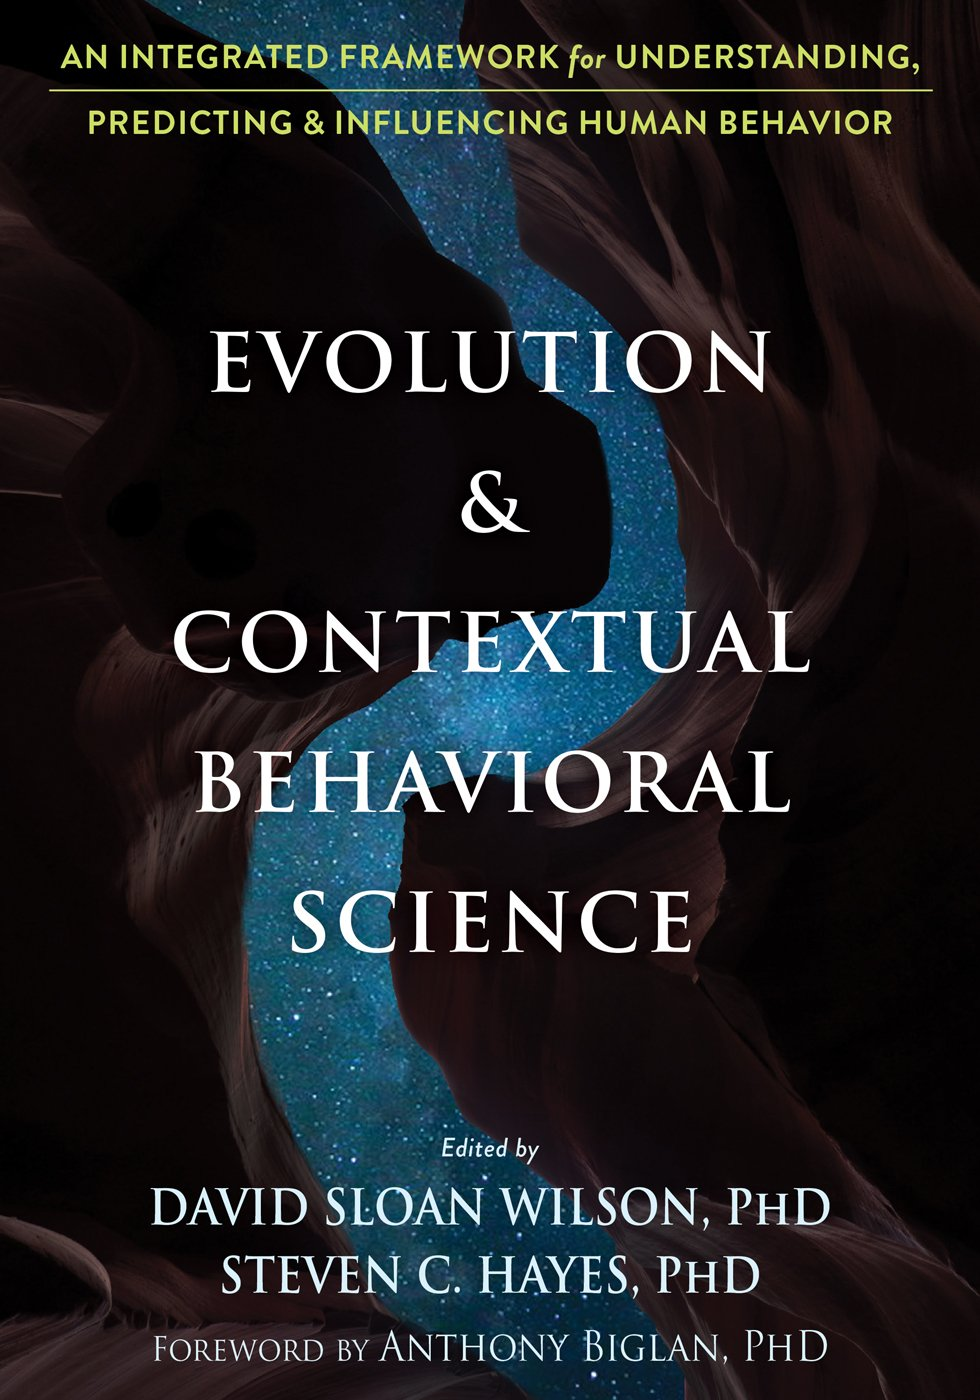 Read Online Evolution and Contextual Behavioral Science: An Integrated Framework for Understanding, Predicting, and Influencing Human Behavior ebook